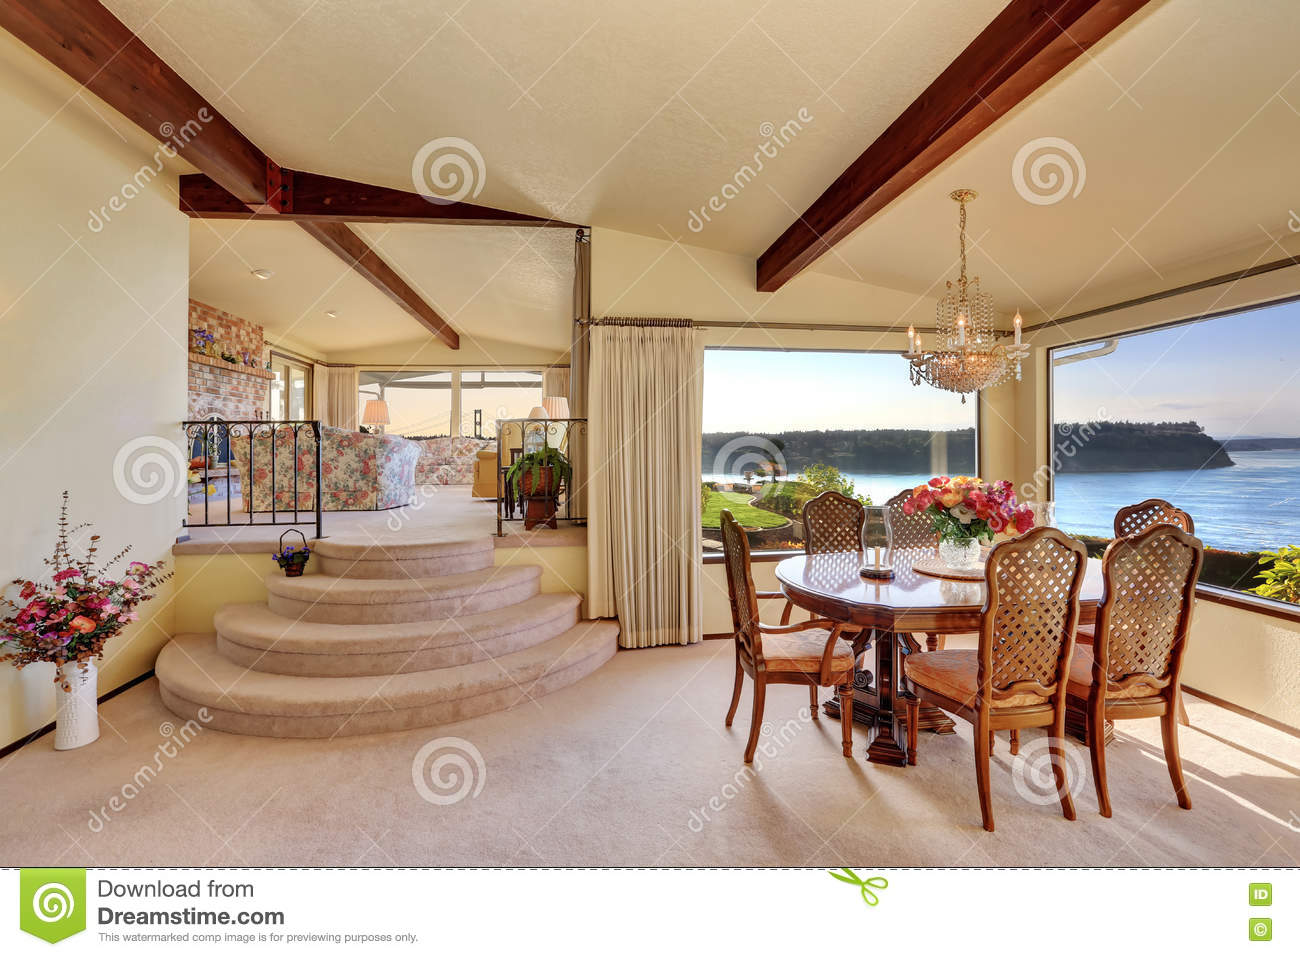 Picture of: Dining Room With Carved Wood Table Set And Water View Stock Photo Image Of Idea Furniture 76319756